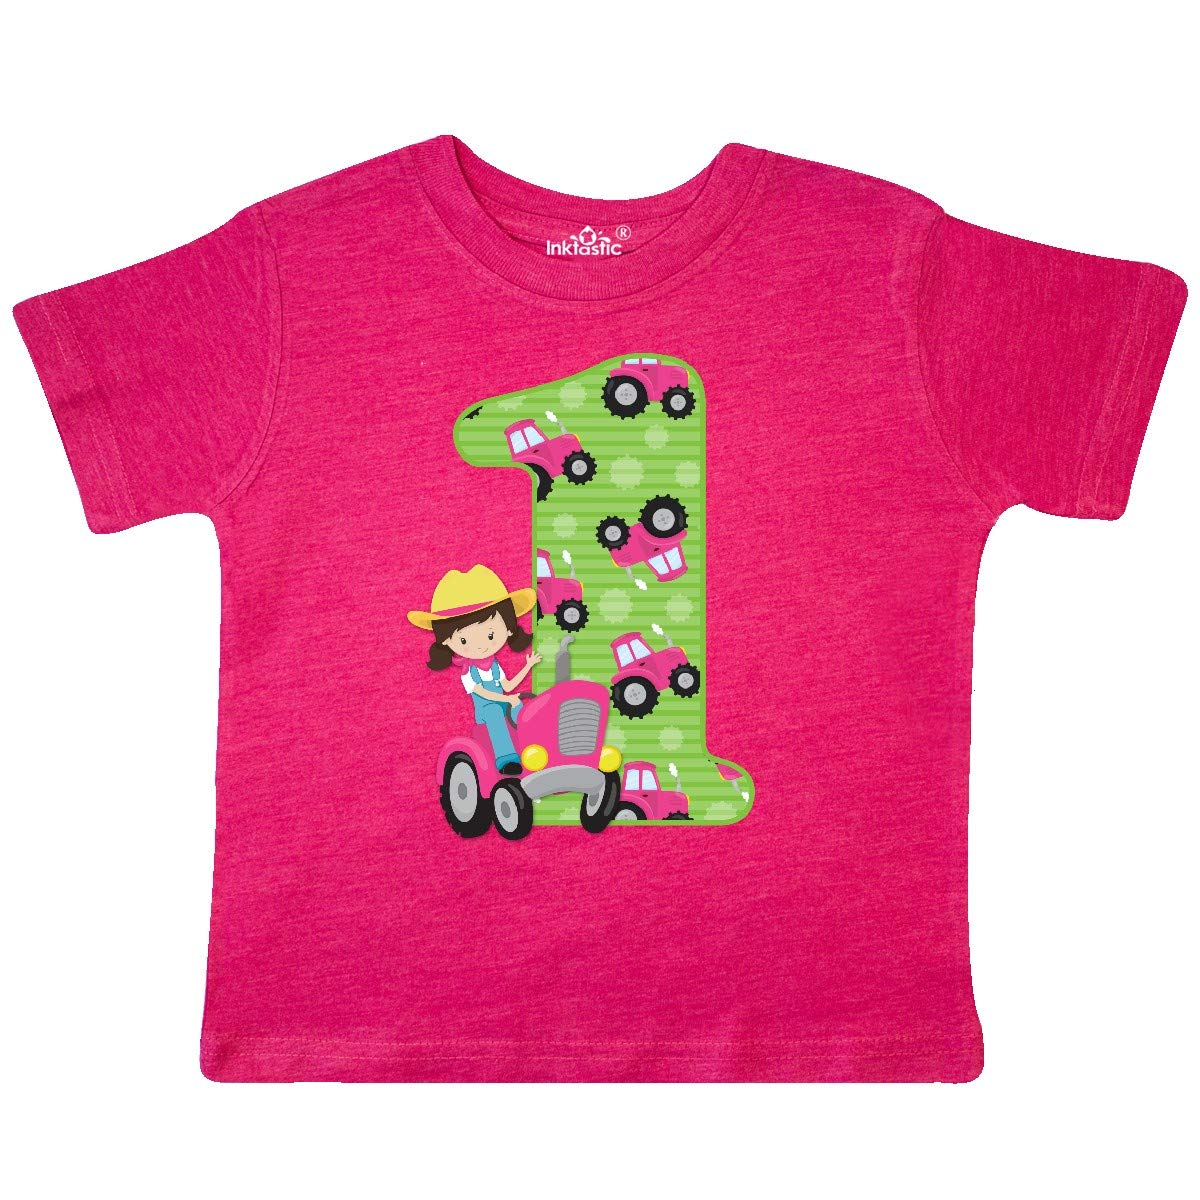 inktastic Tractor Girl 1st Birthday Toddler T-Shirt